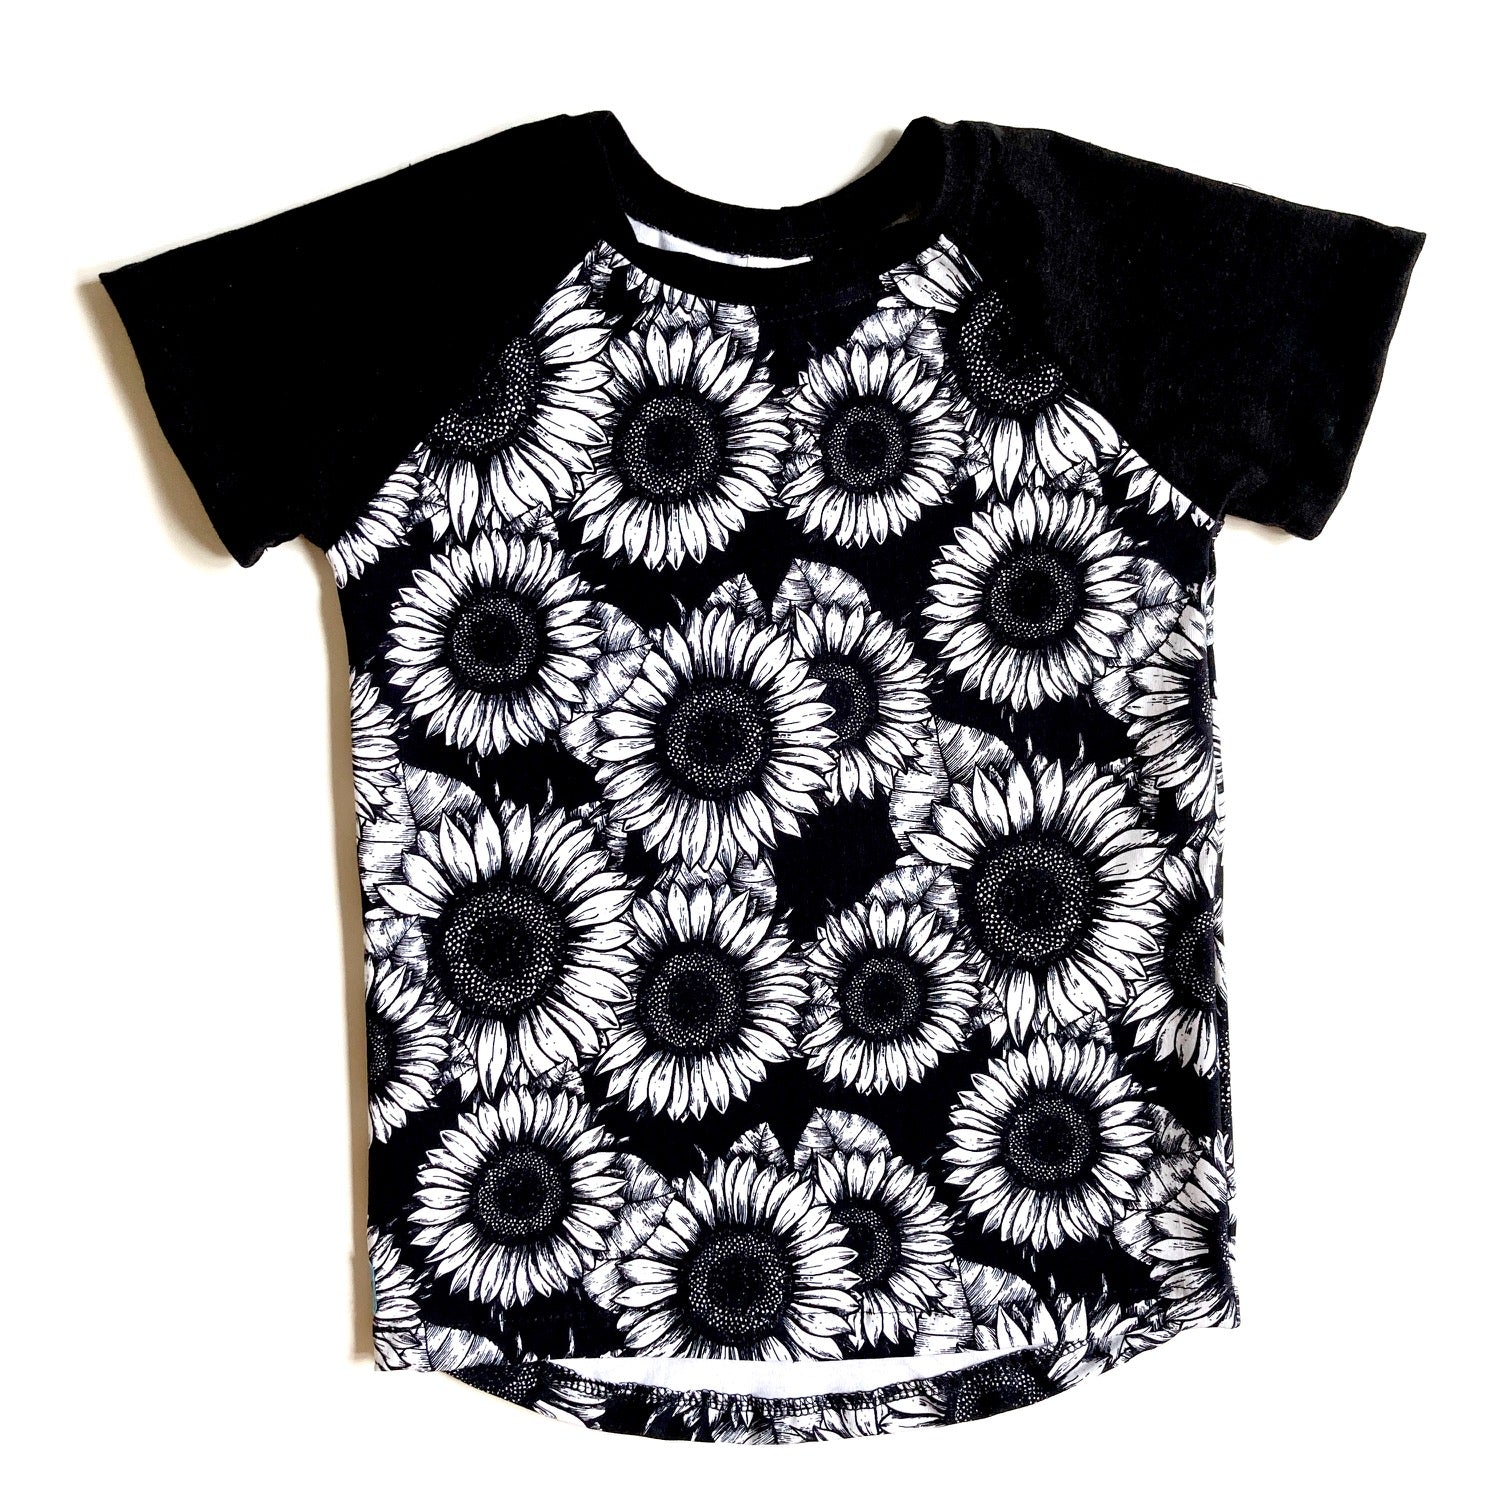 Kids Raglan T-Shirt : Sunflower Sketches But Different with Black